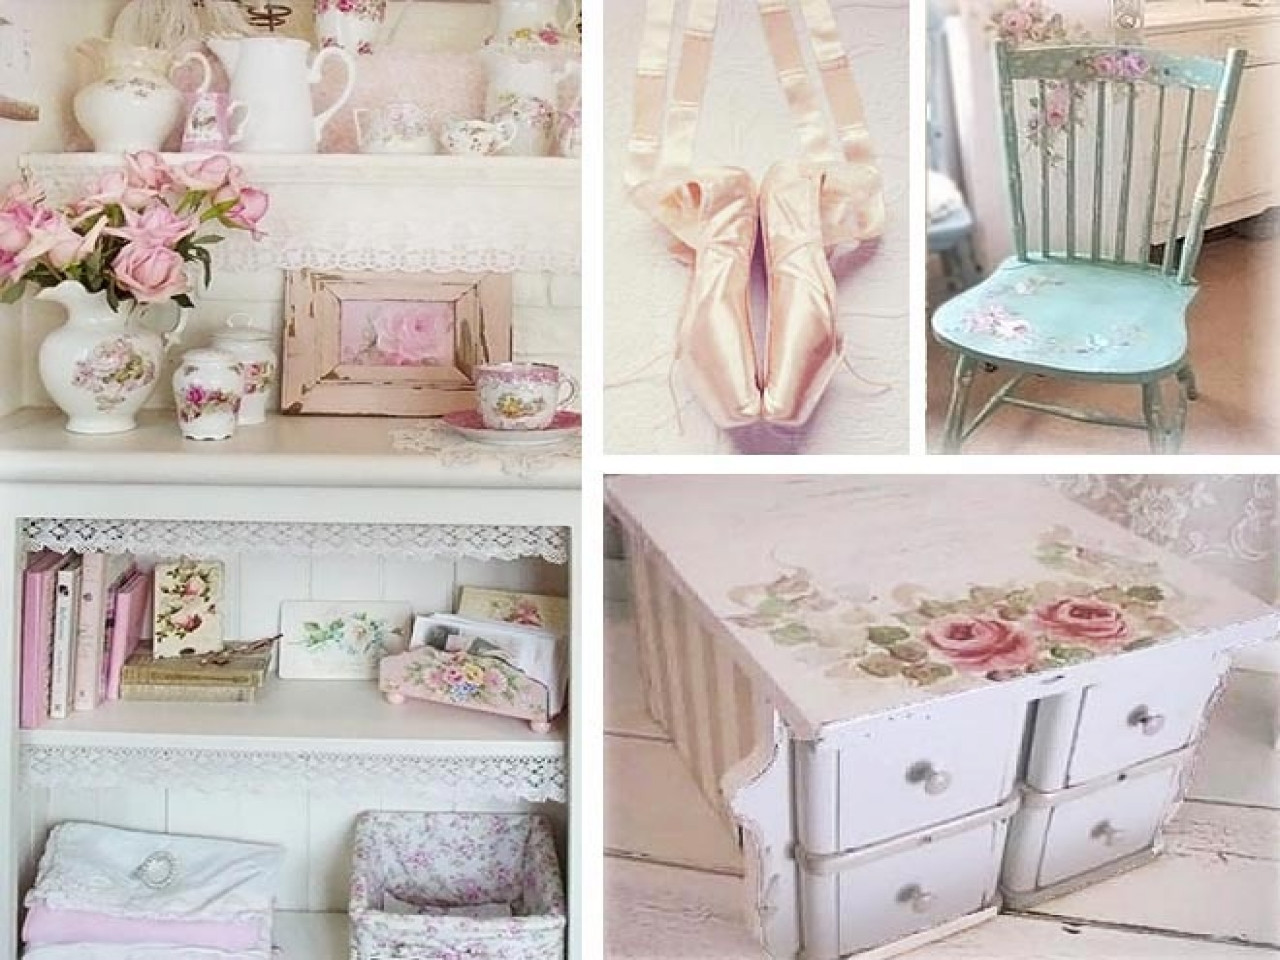 Best ideas about Pinterest Shabby Chic . Save or Pin Chic bedroom shabby chic home decorating ideas pinterest Now.